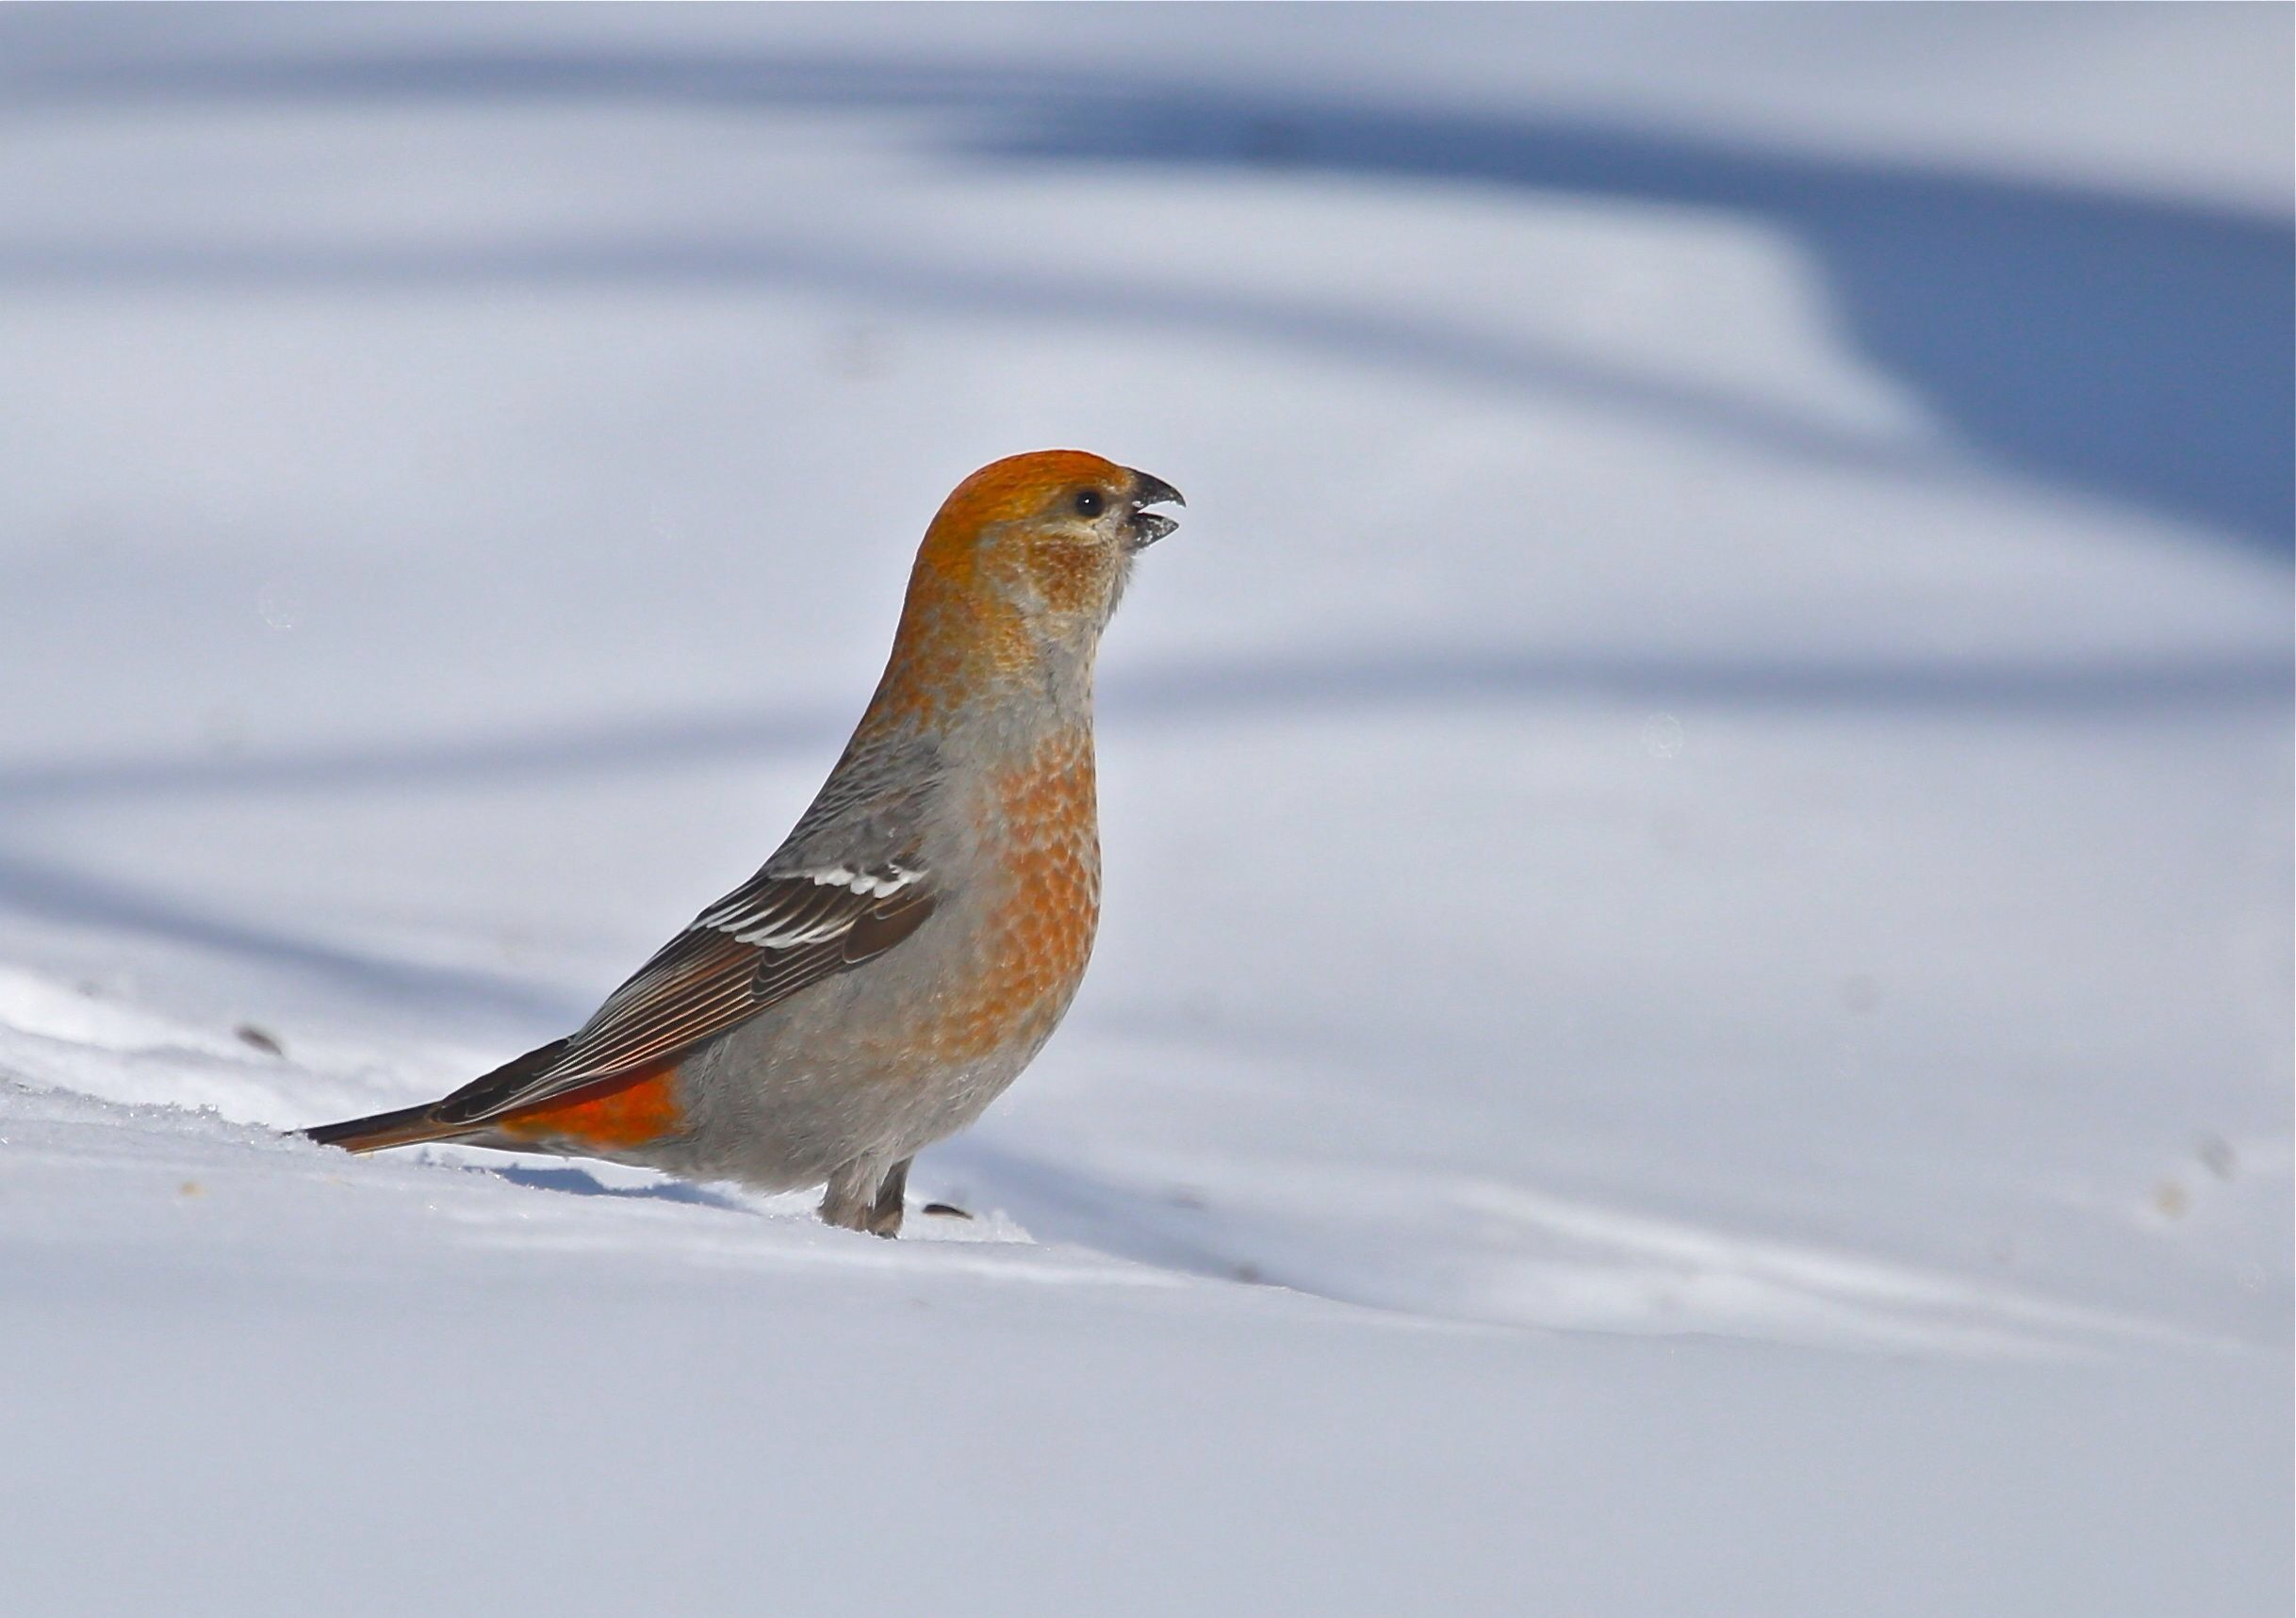 And three shots of a lovely pine grosbeak.